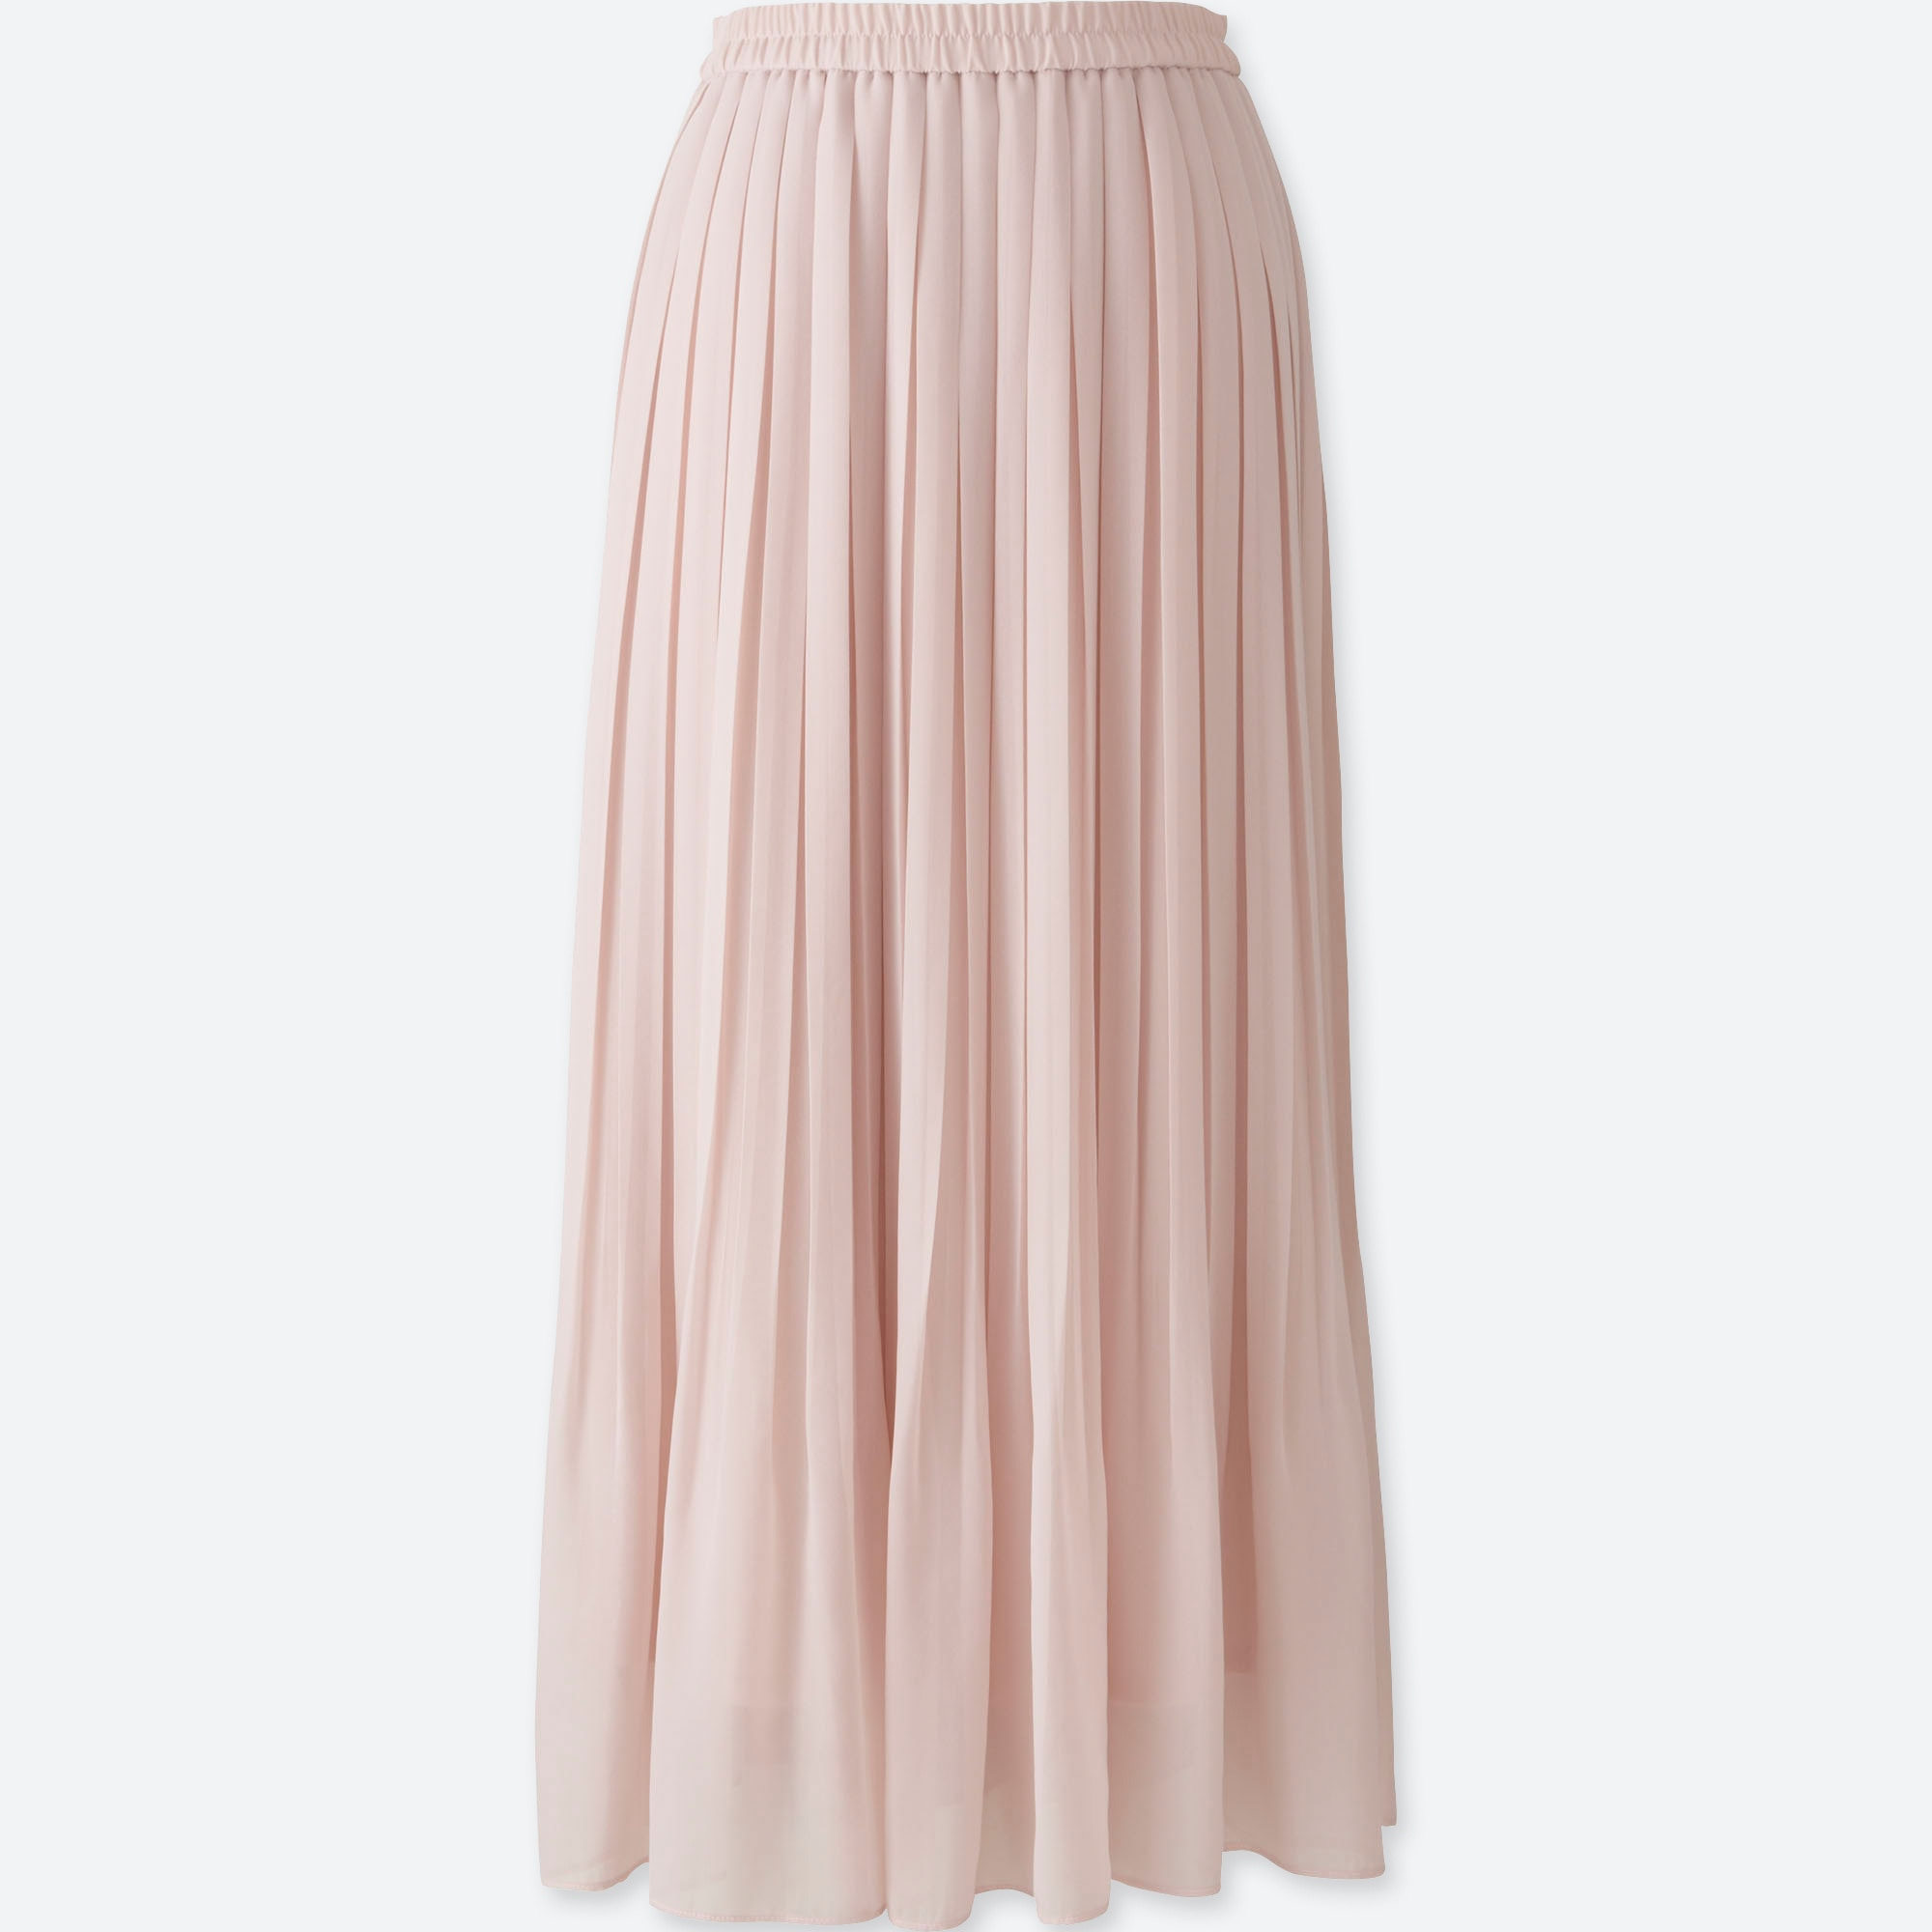 5862b930c2 WOMEN HIGH WAIST CHIFFON PLEATED SKIRT, PINK, large Opens a New Window.